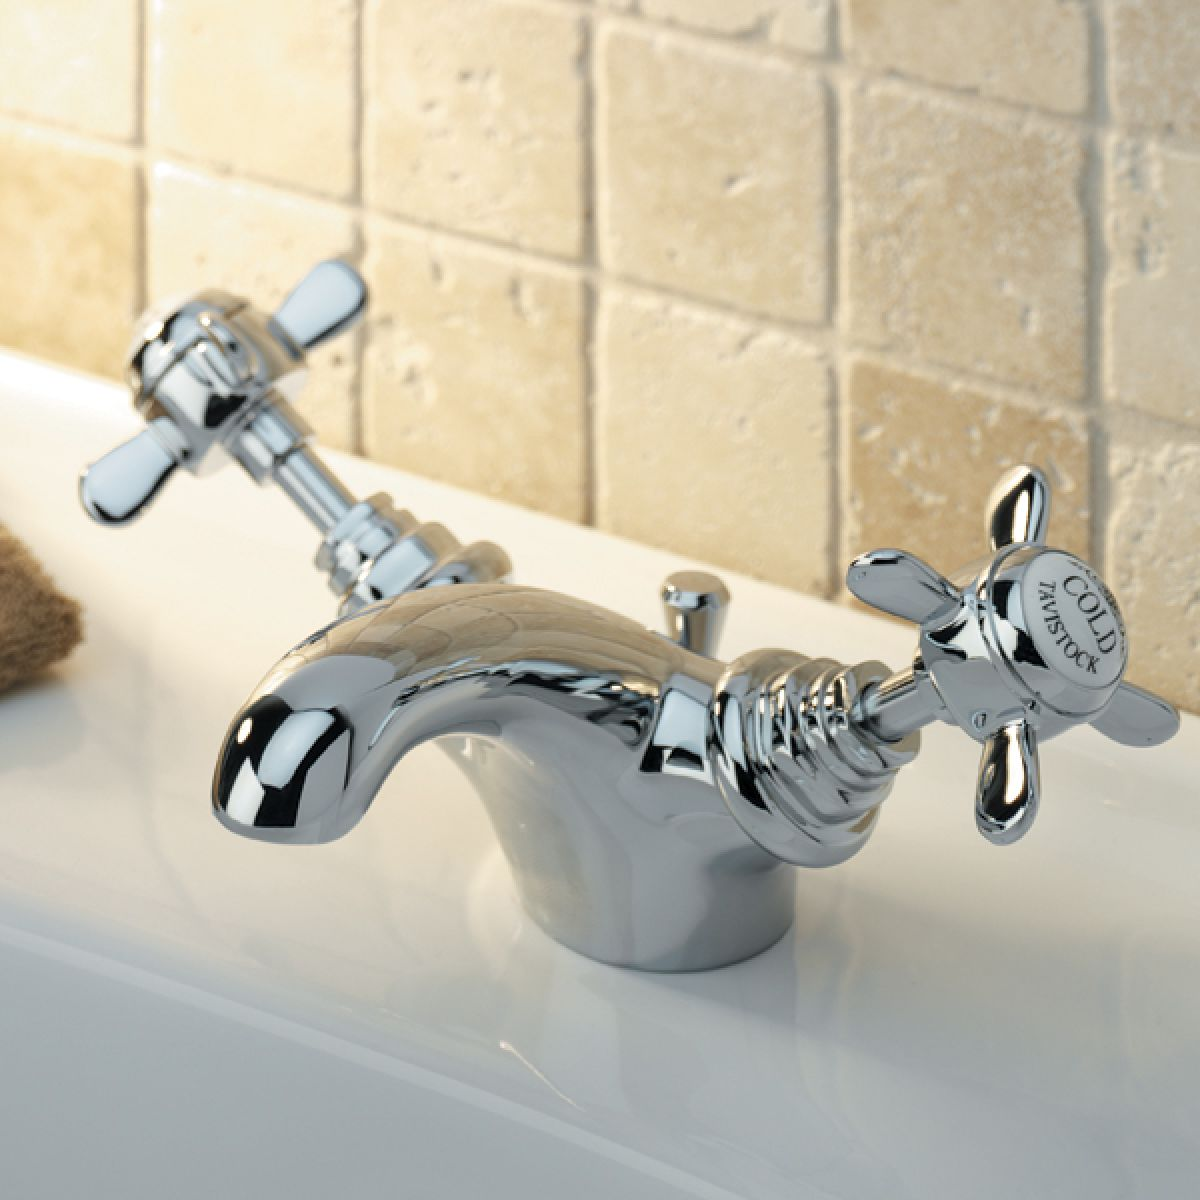 Tavistock Varsity Basin Mixer Tap with Pop Up Waste in Situation